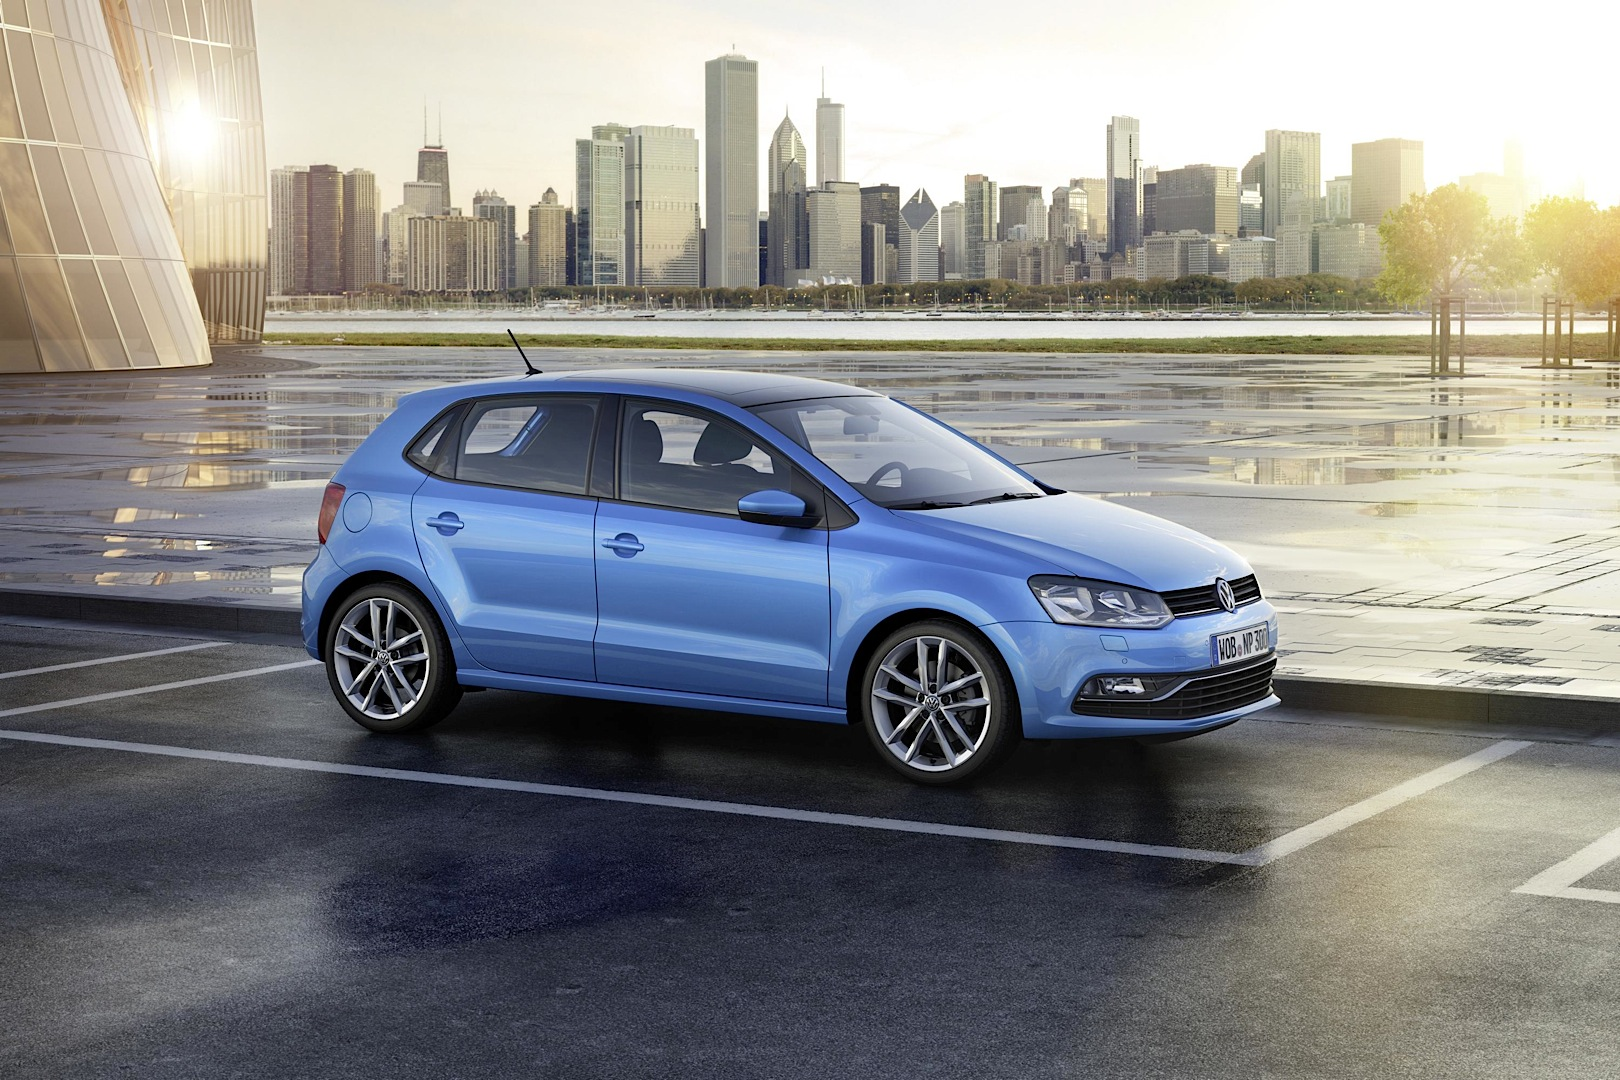 2014 Volkswagen Polo Facelift Exterior Changes Photo Gallery 75654